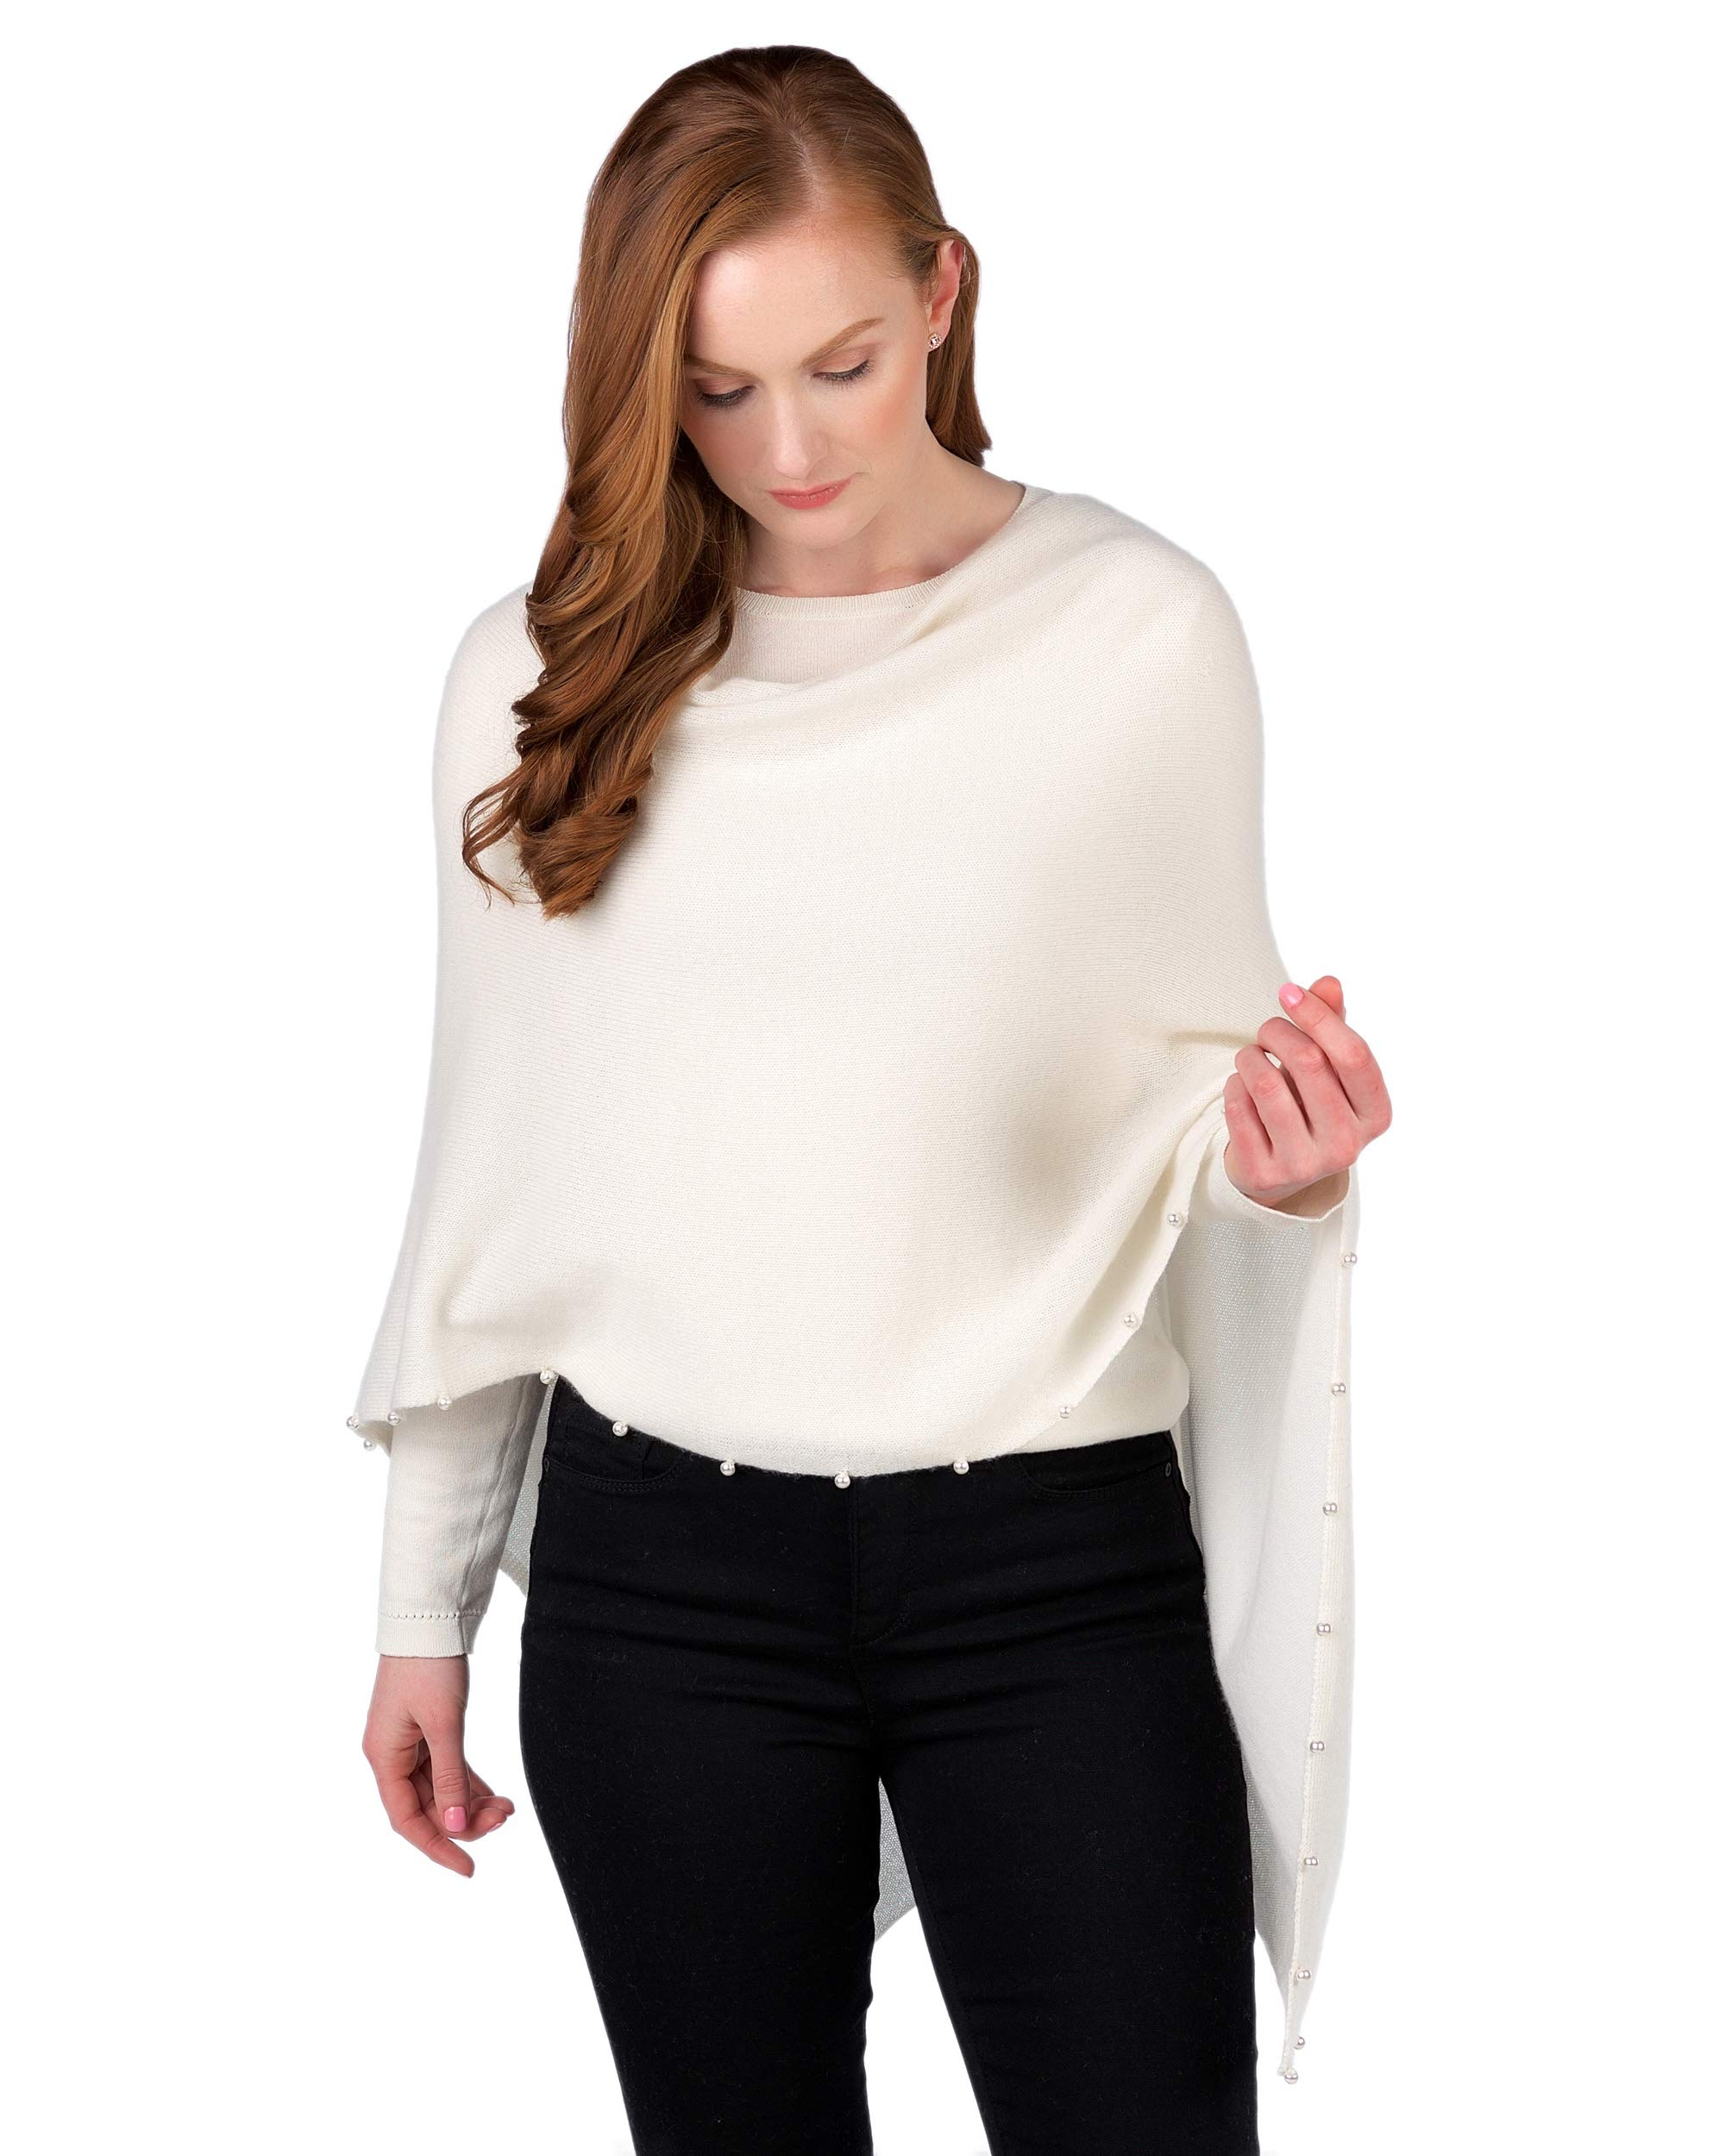 Claudia Nichole by Alashan 100% Cashmere Pearl Trim Dress Topper Poncho - White by Claudia Nichole